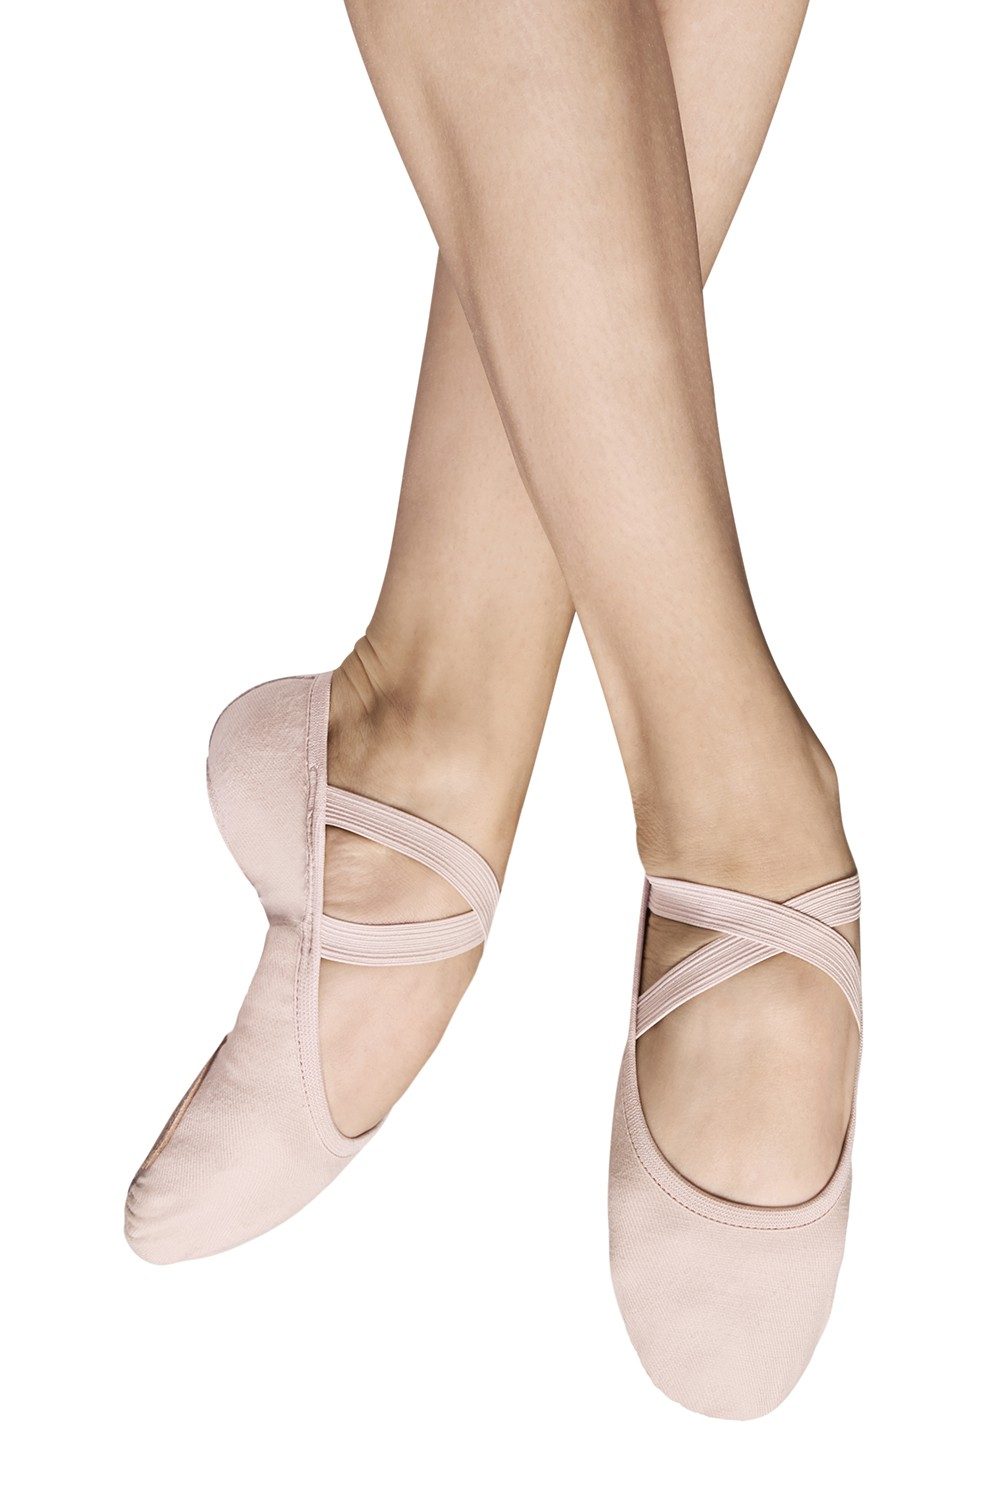 Performa - Kids Girl's Ballet Shoes